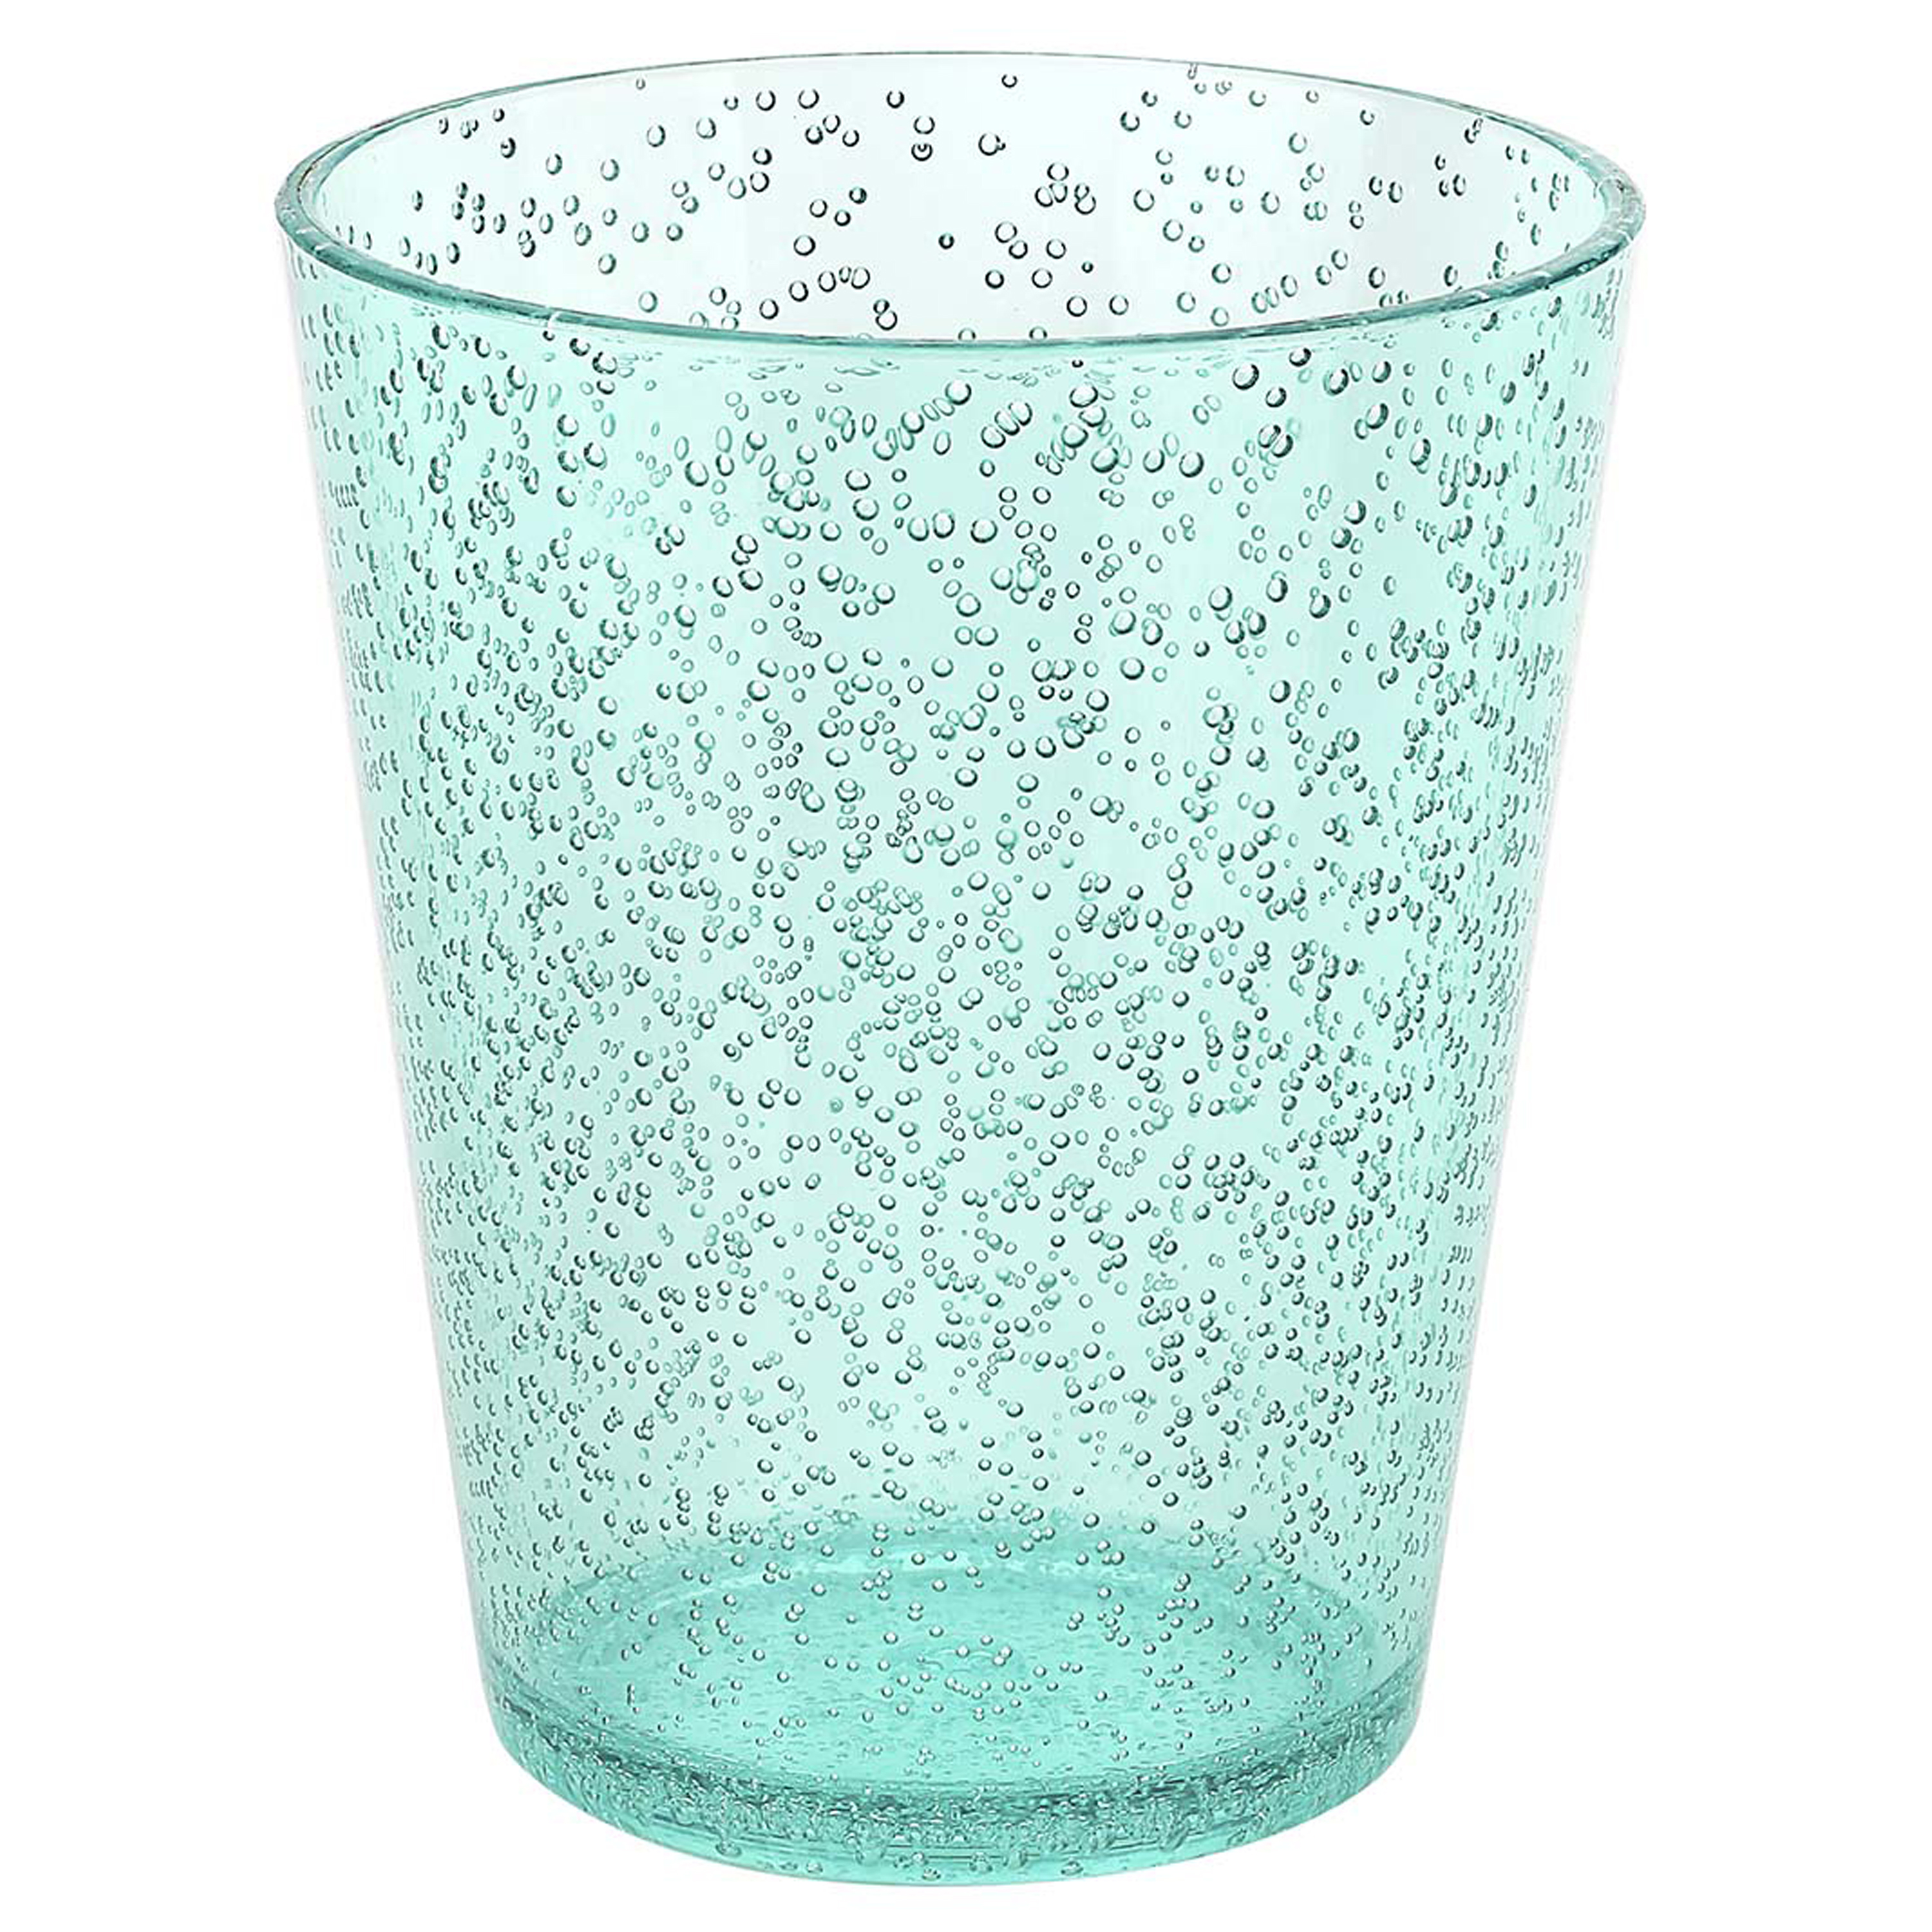 Spritz 16 ounce Old-Fashion Glass, Mint slideshow image 10